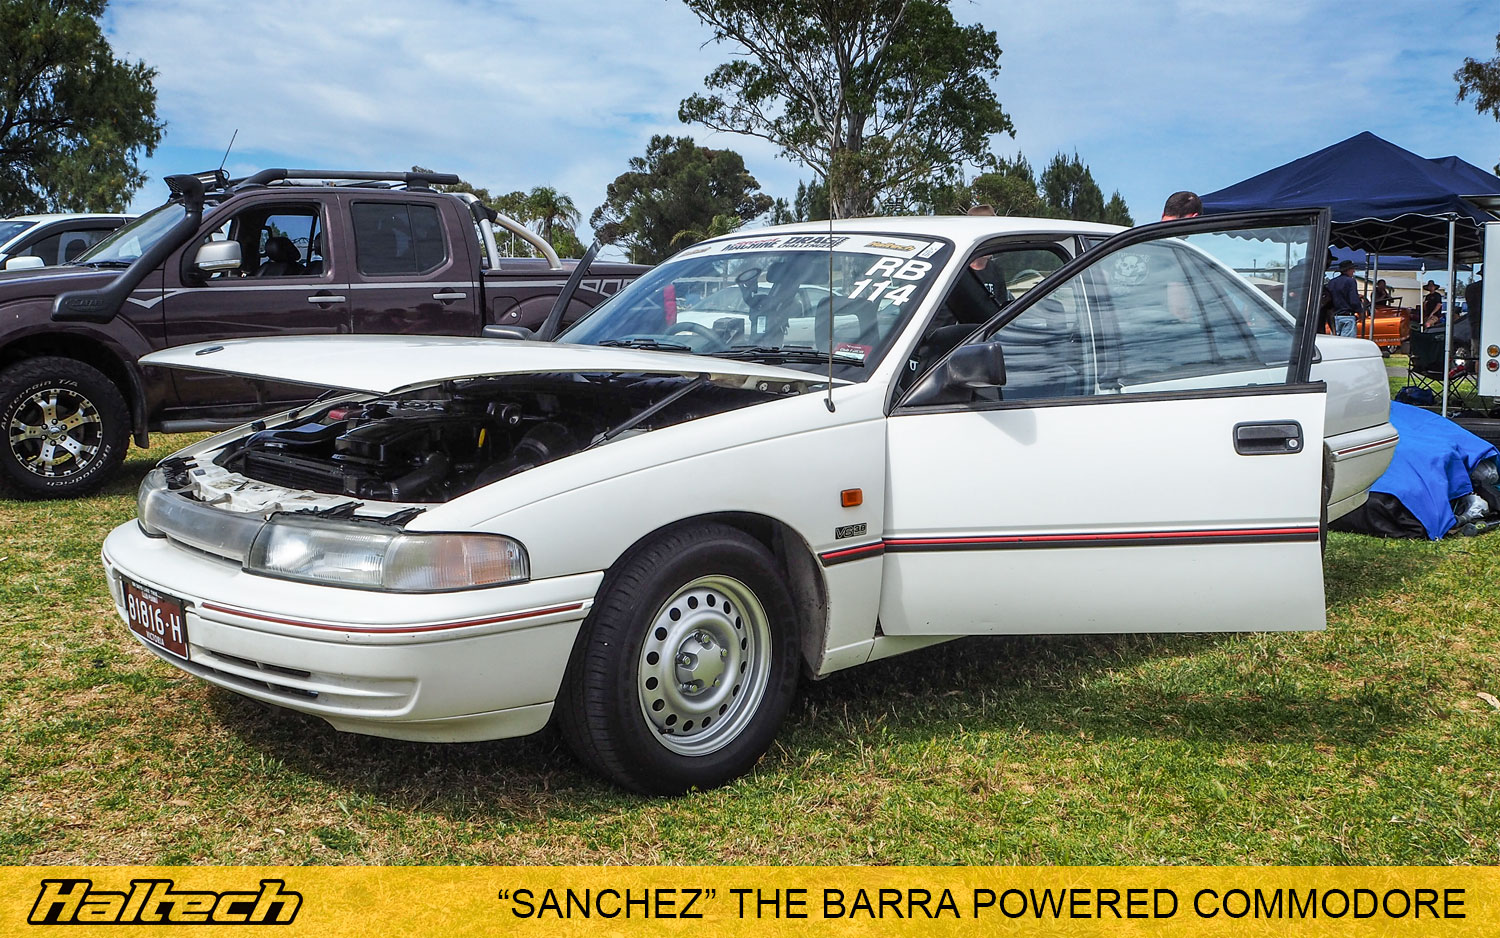 Tales from Drag Challenge: Sanchez the Barra Commodore